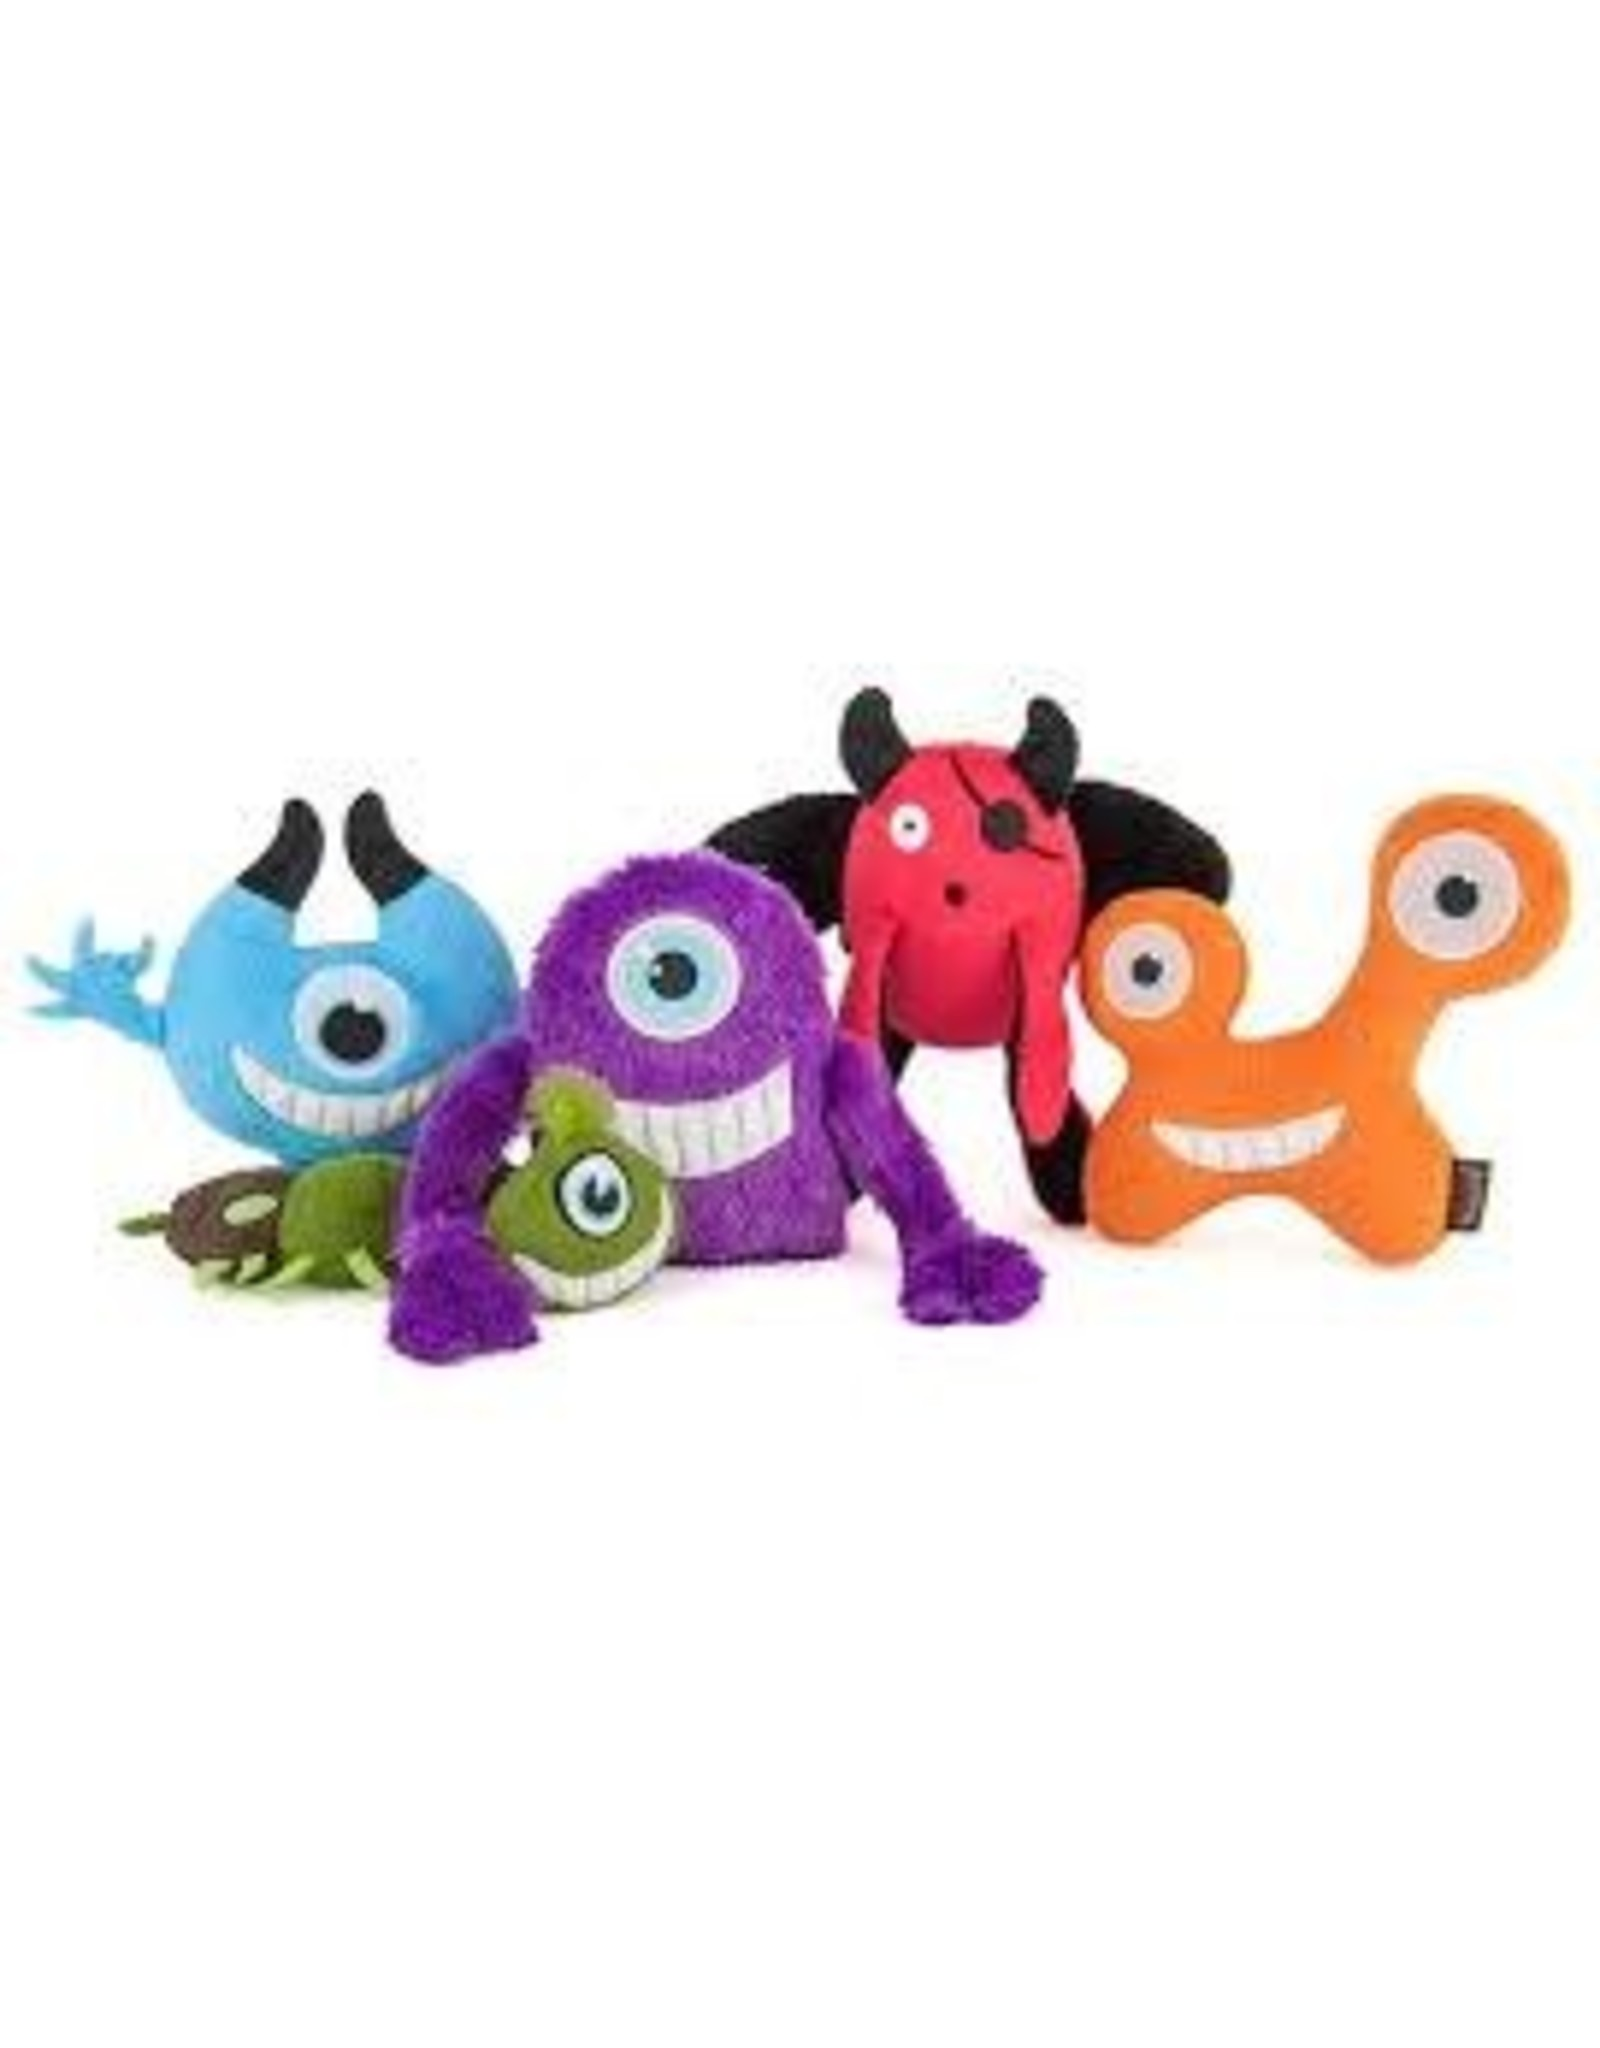 PLAY PLAY MONSTER SNORE PURPLE